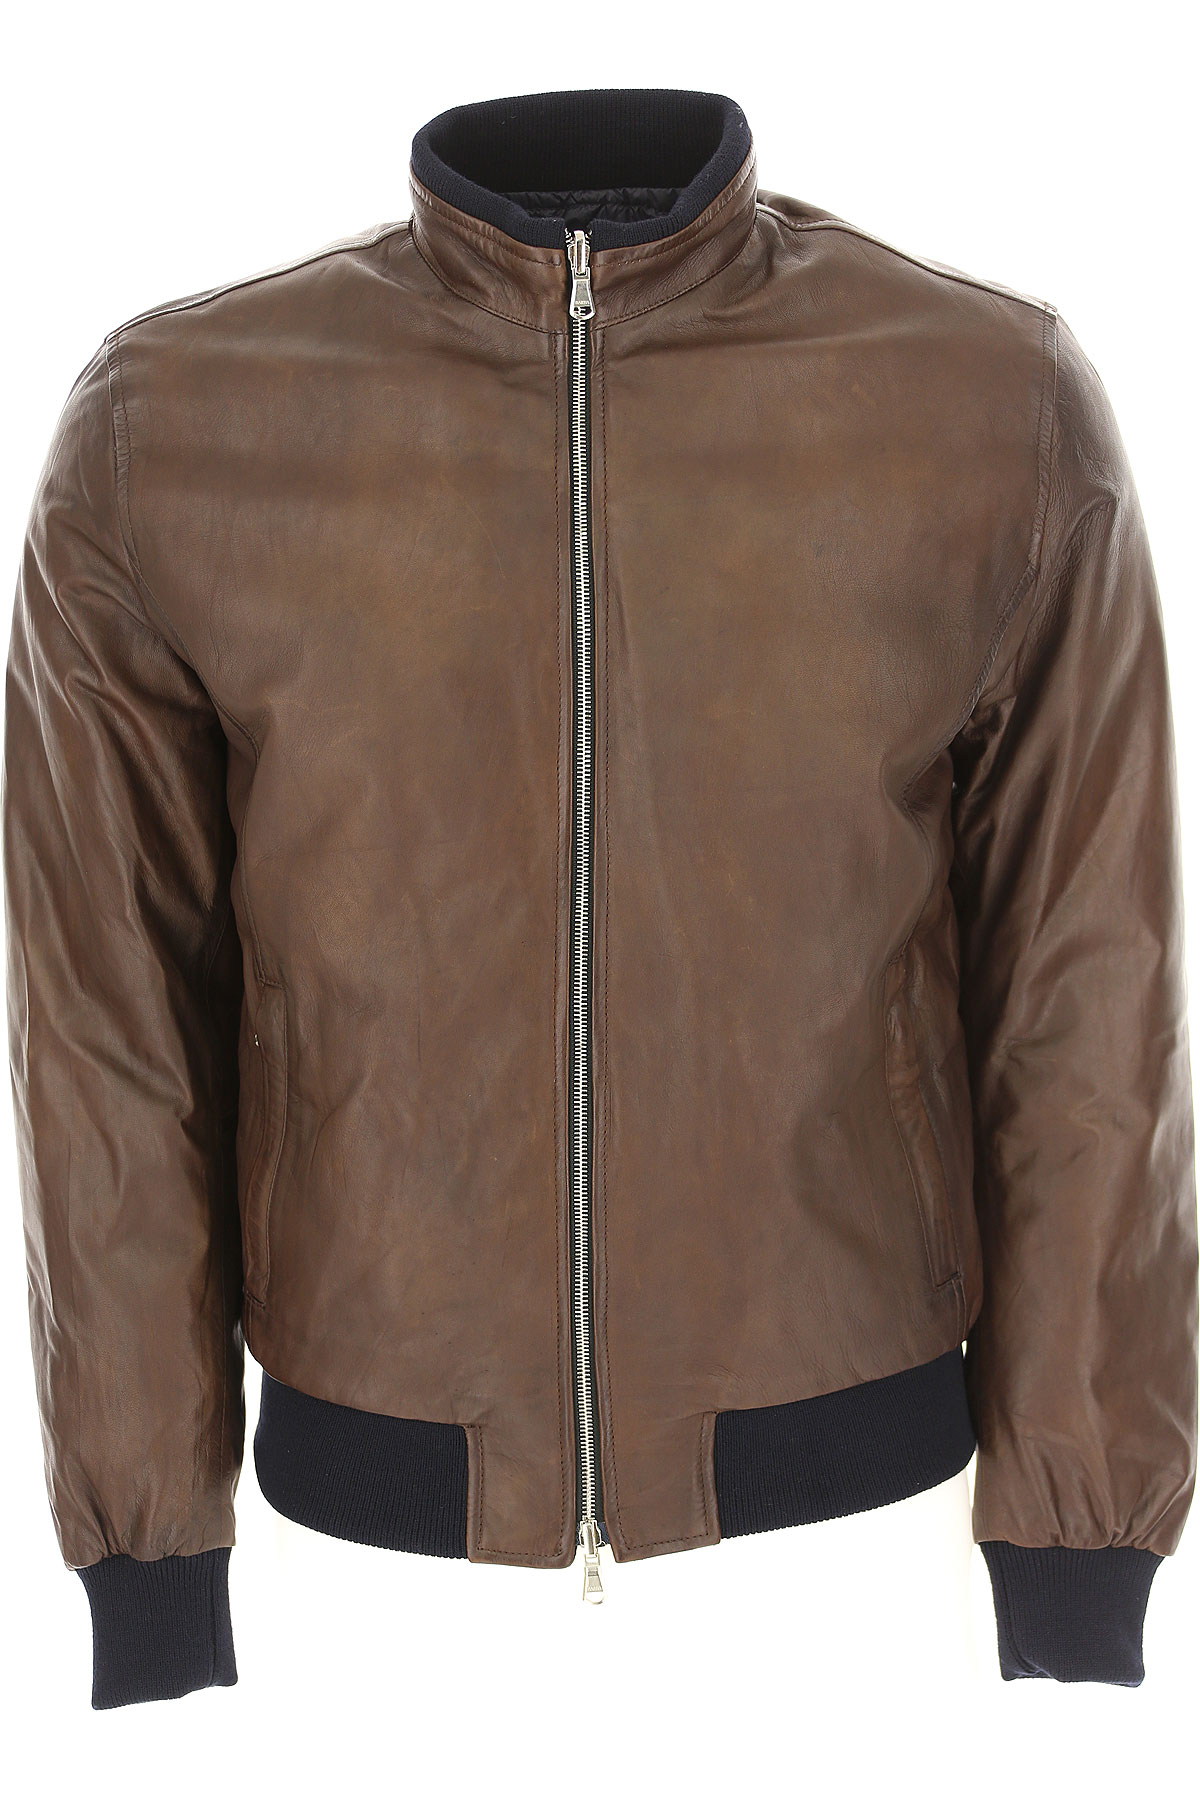 Barba Leather Jacket for Men On Sale, Dark Brown, Leather, 2019, M XL